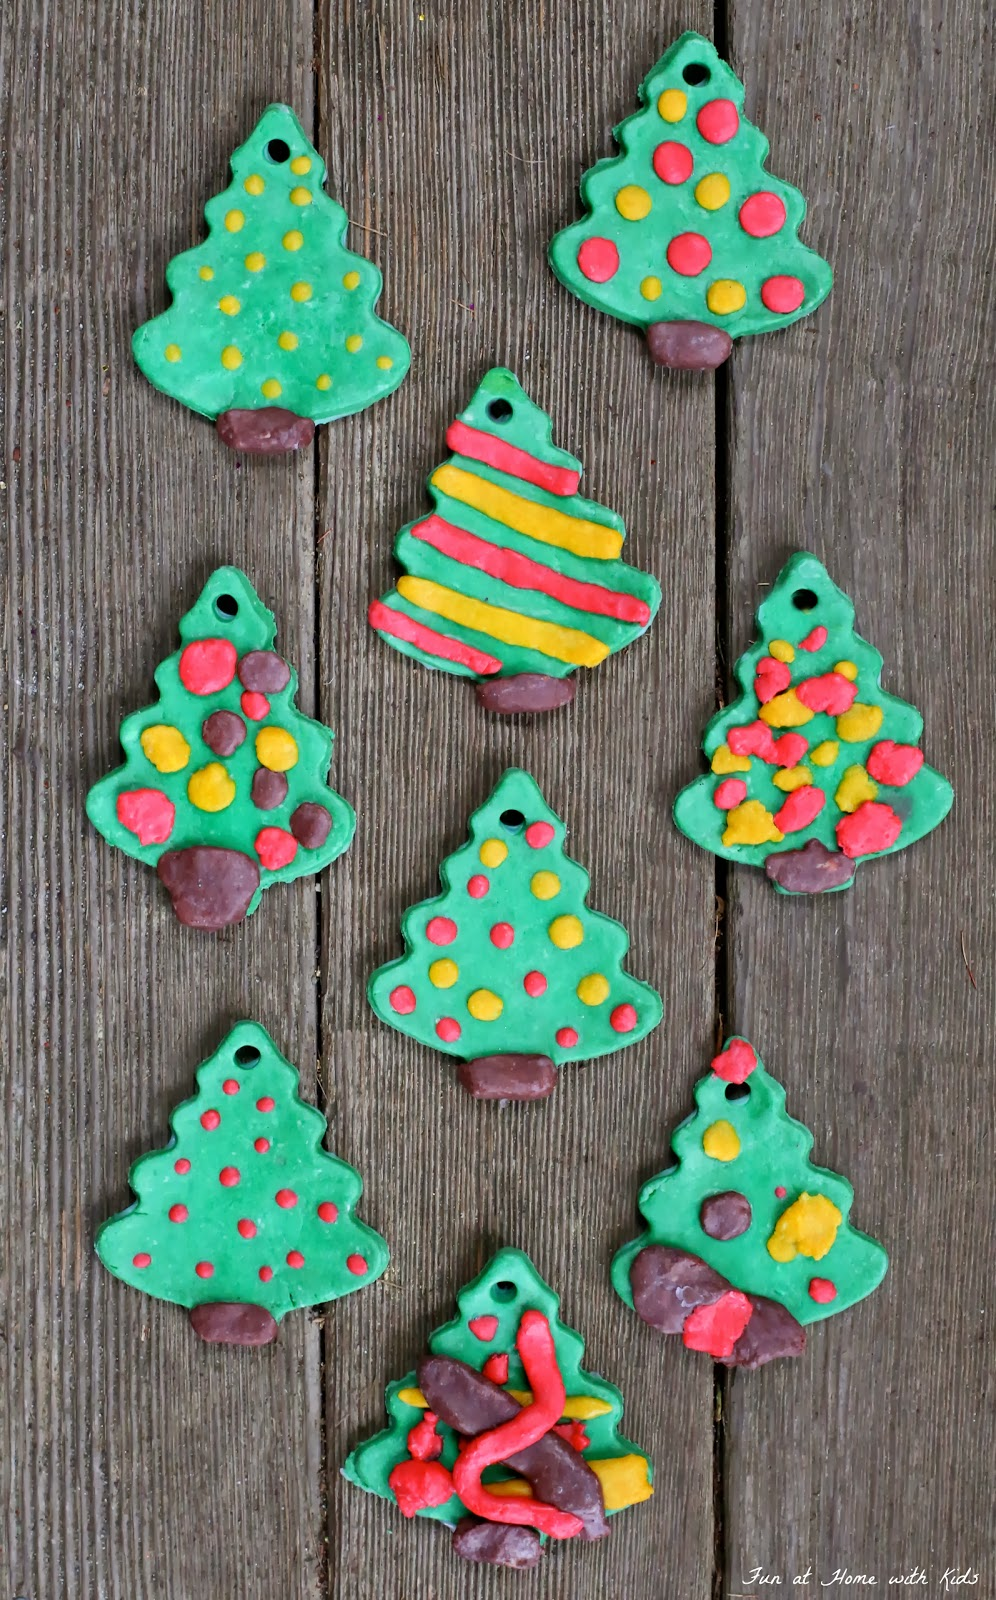 A recipe for vibrantly colored ornaments made of bread clay - you probably have everything you need to make these right now!  From Fun at Home with Kids